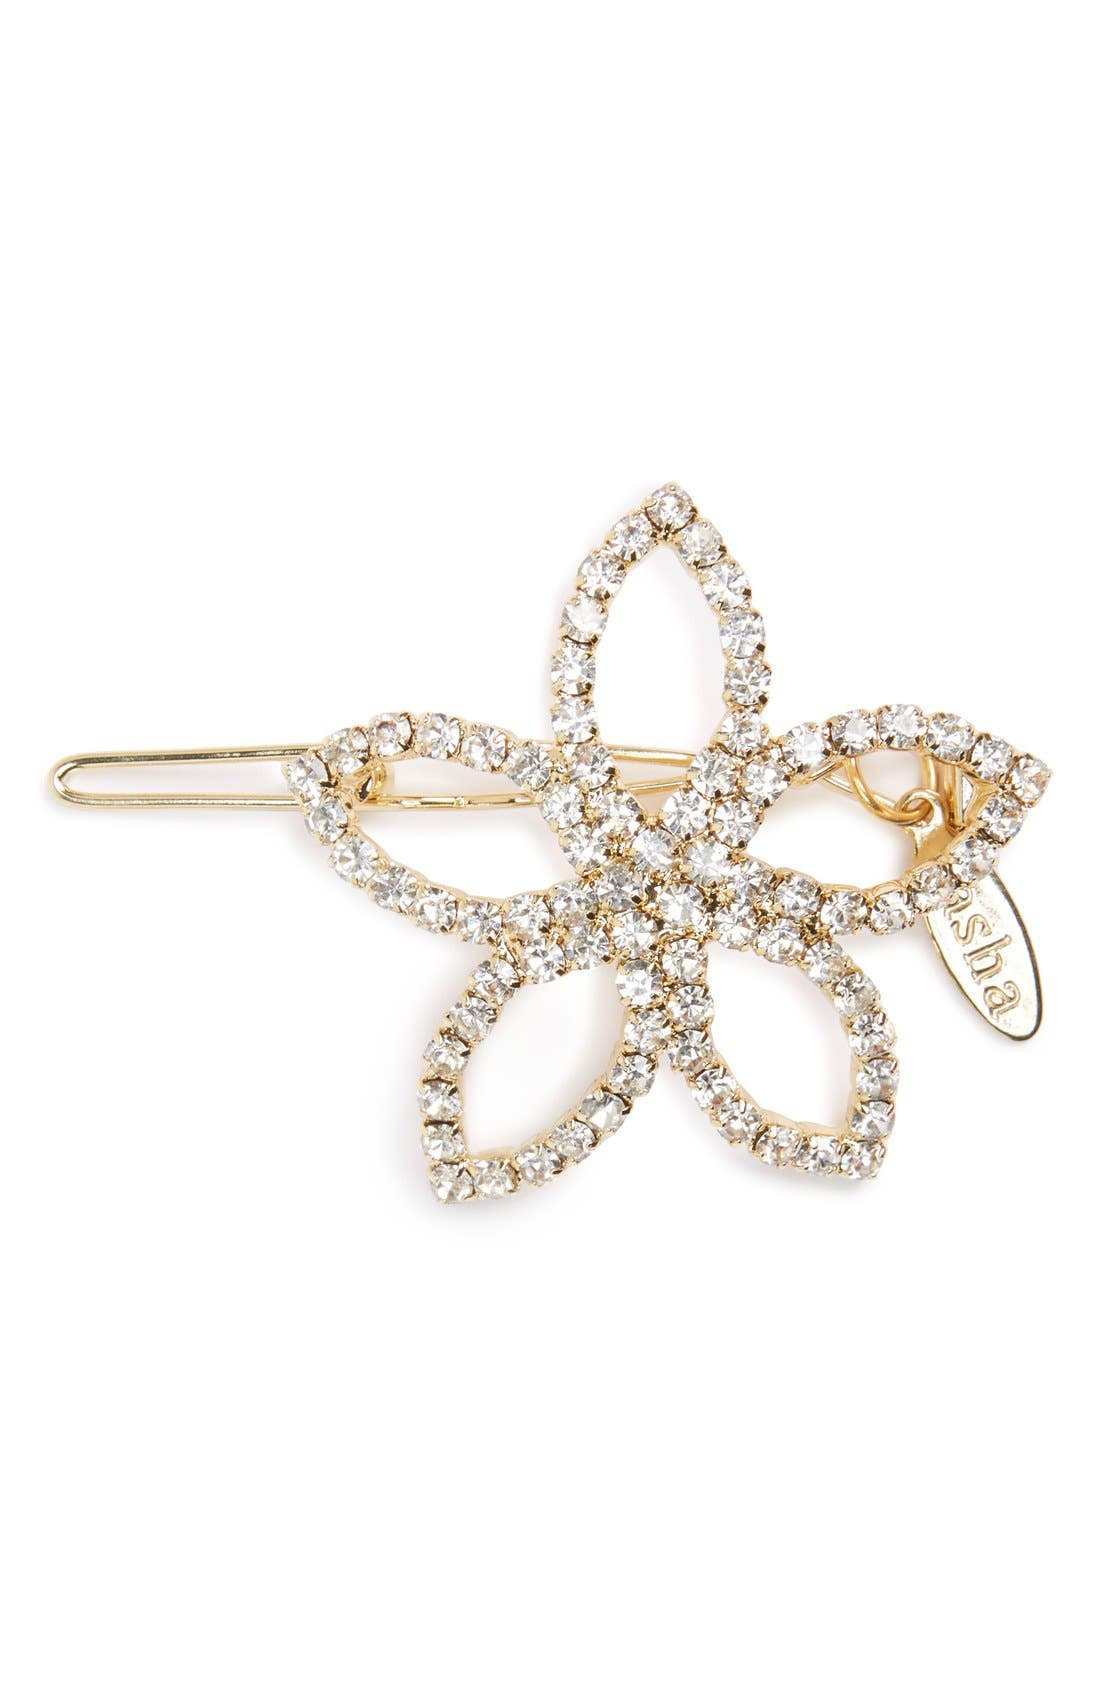 TASHA, Crystal Flower Barrette, Main thumbnail 1, color, 710